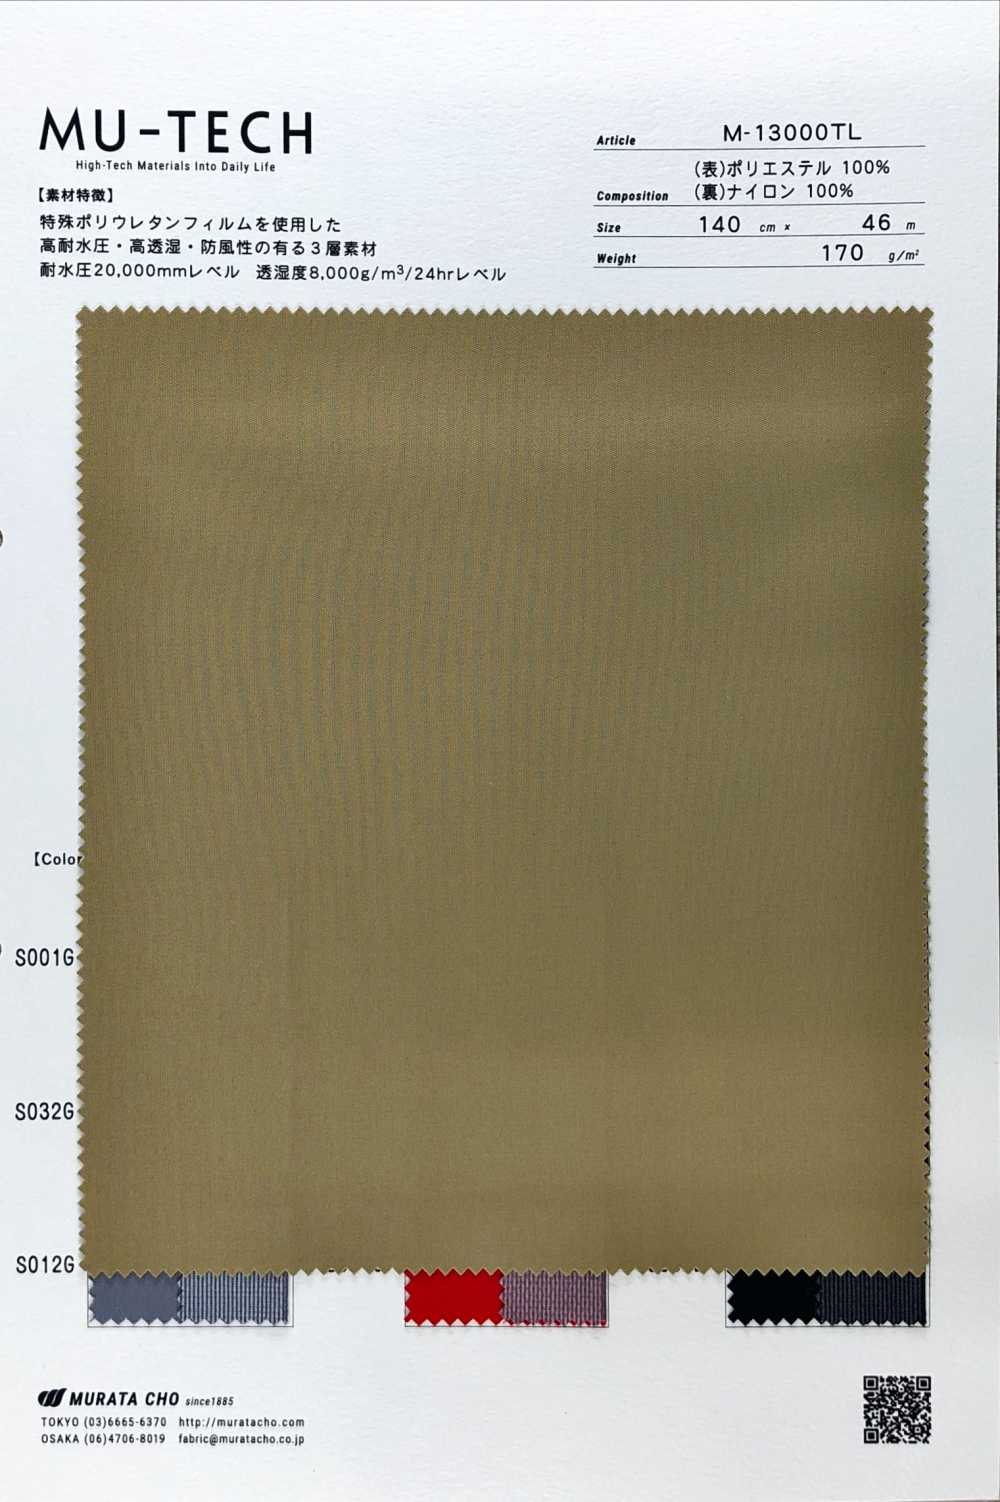 M-13000TL High-performance 3-layer Polyester Knit[Textile / Fabric] Muratacho